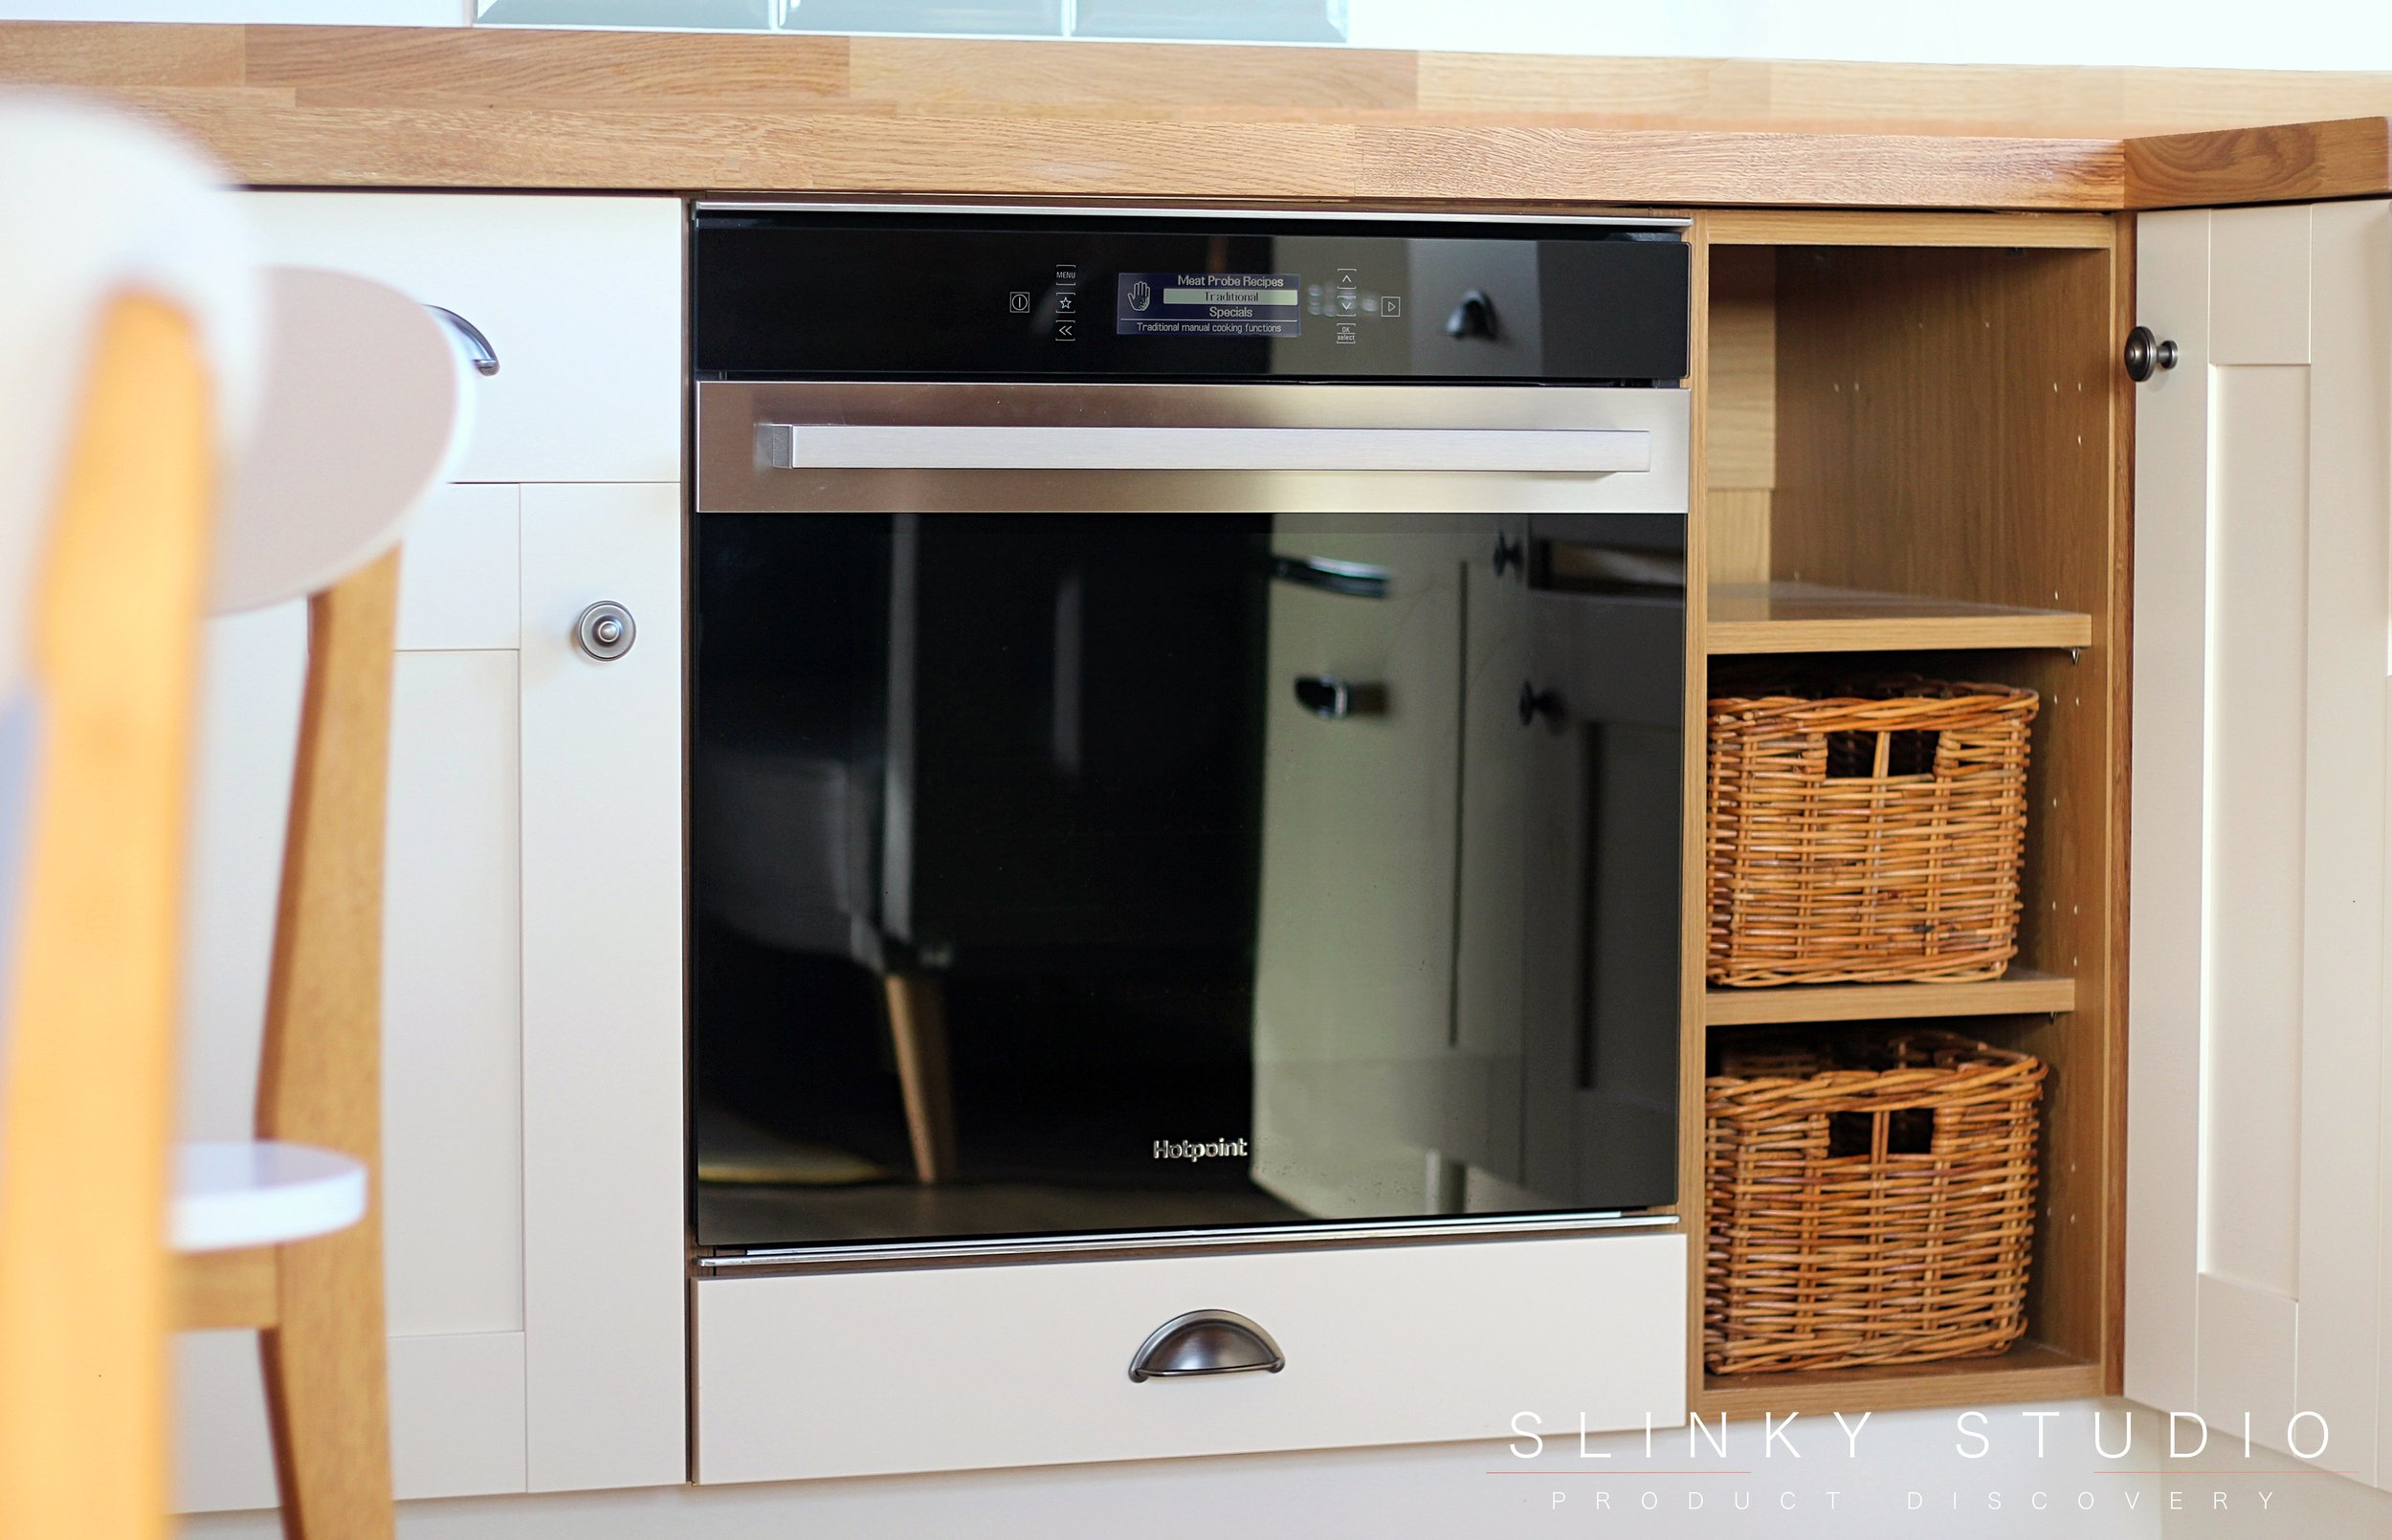 Hotpoint Class 9 SI9 891 SP IX Oven